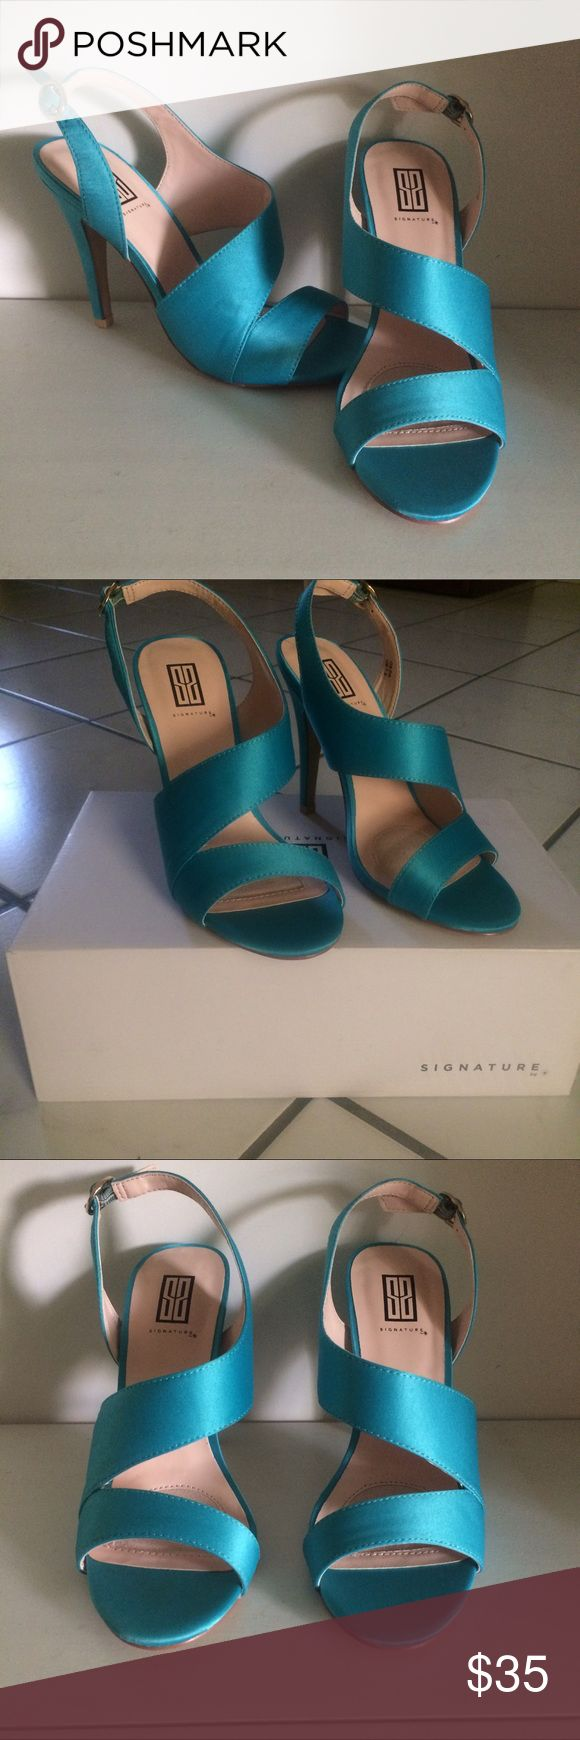 Heels Bandage style heels. Padded insoles. Brand new never been worn, walked around in the house once to see how they felt for no longer then 20 minutes.   Size: 7.5  Brand: Signature (Shoedazzle)  Color: Turquoise Shoe Dazzle Shoes Heels